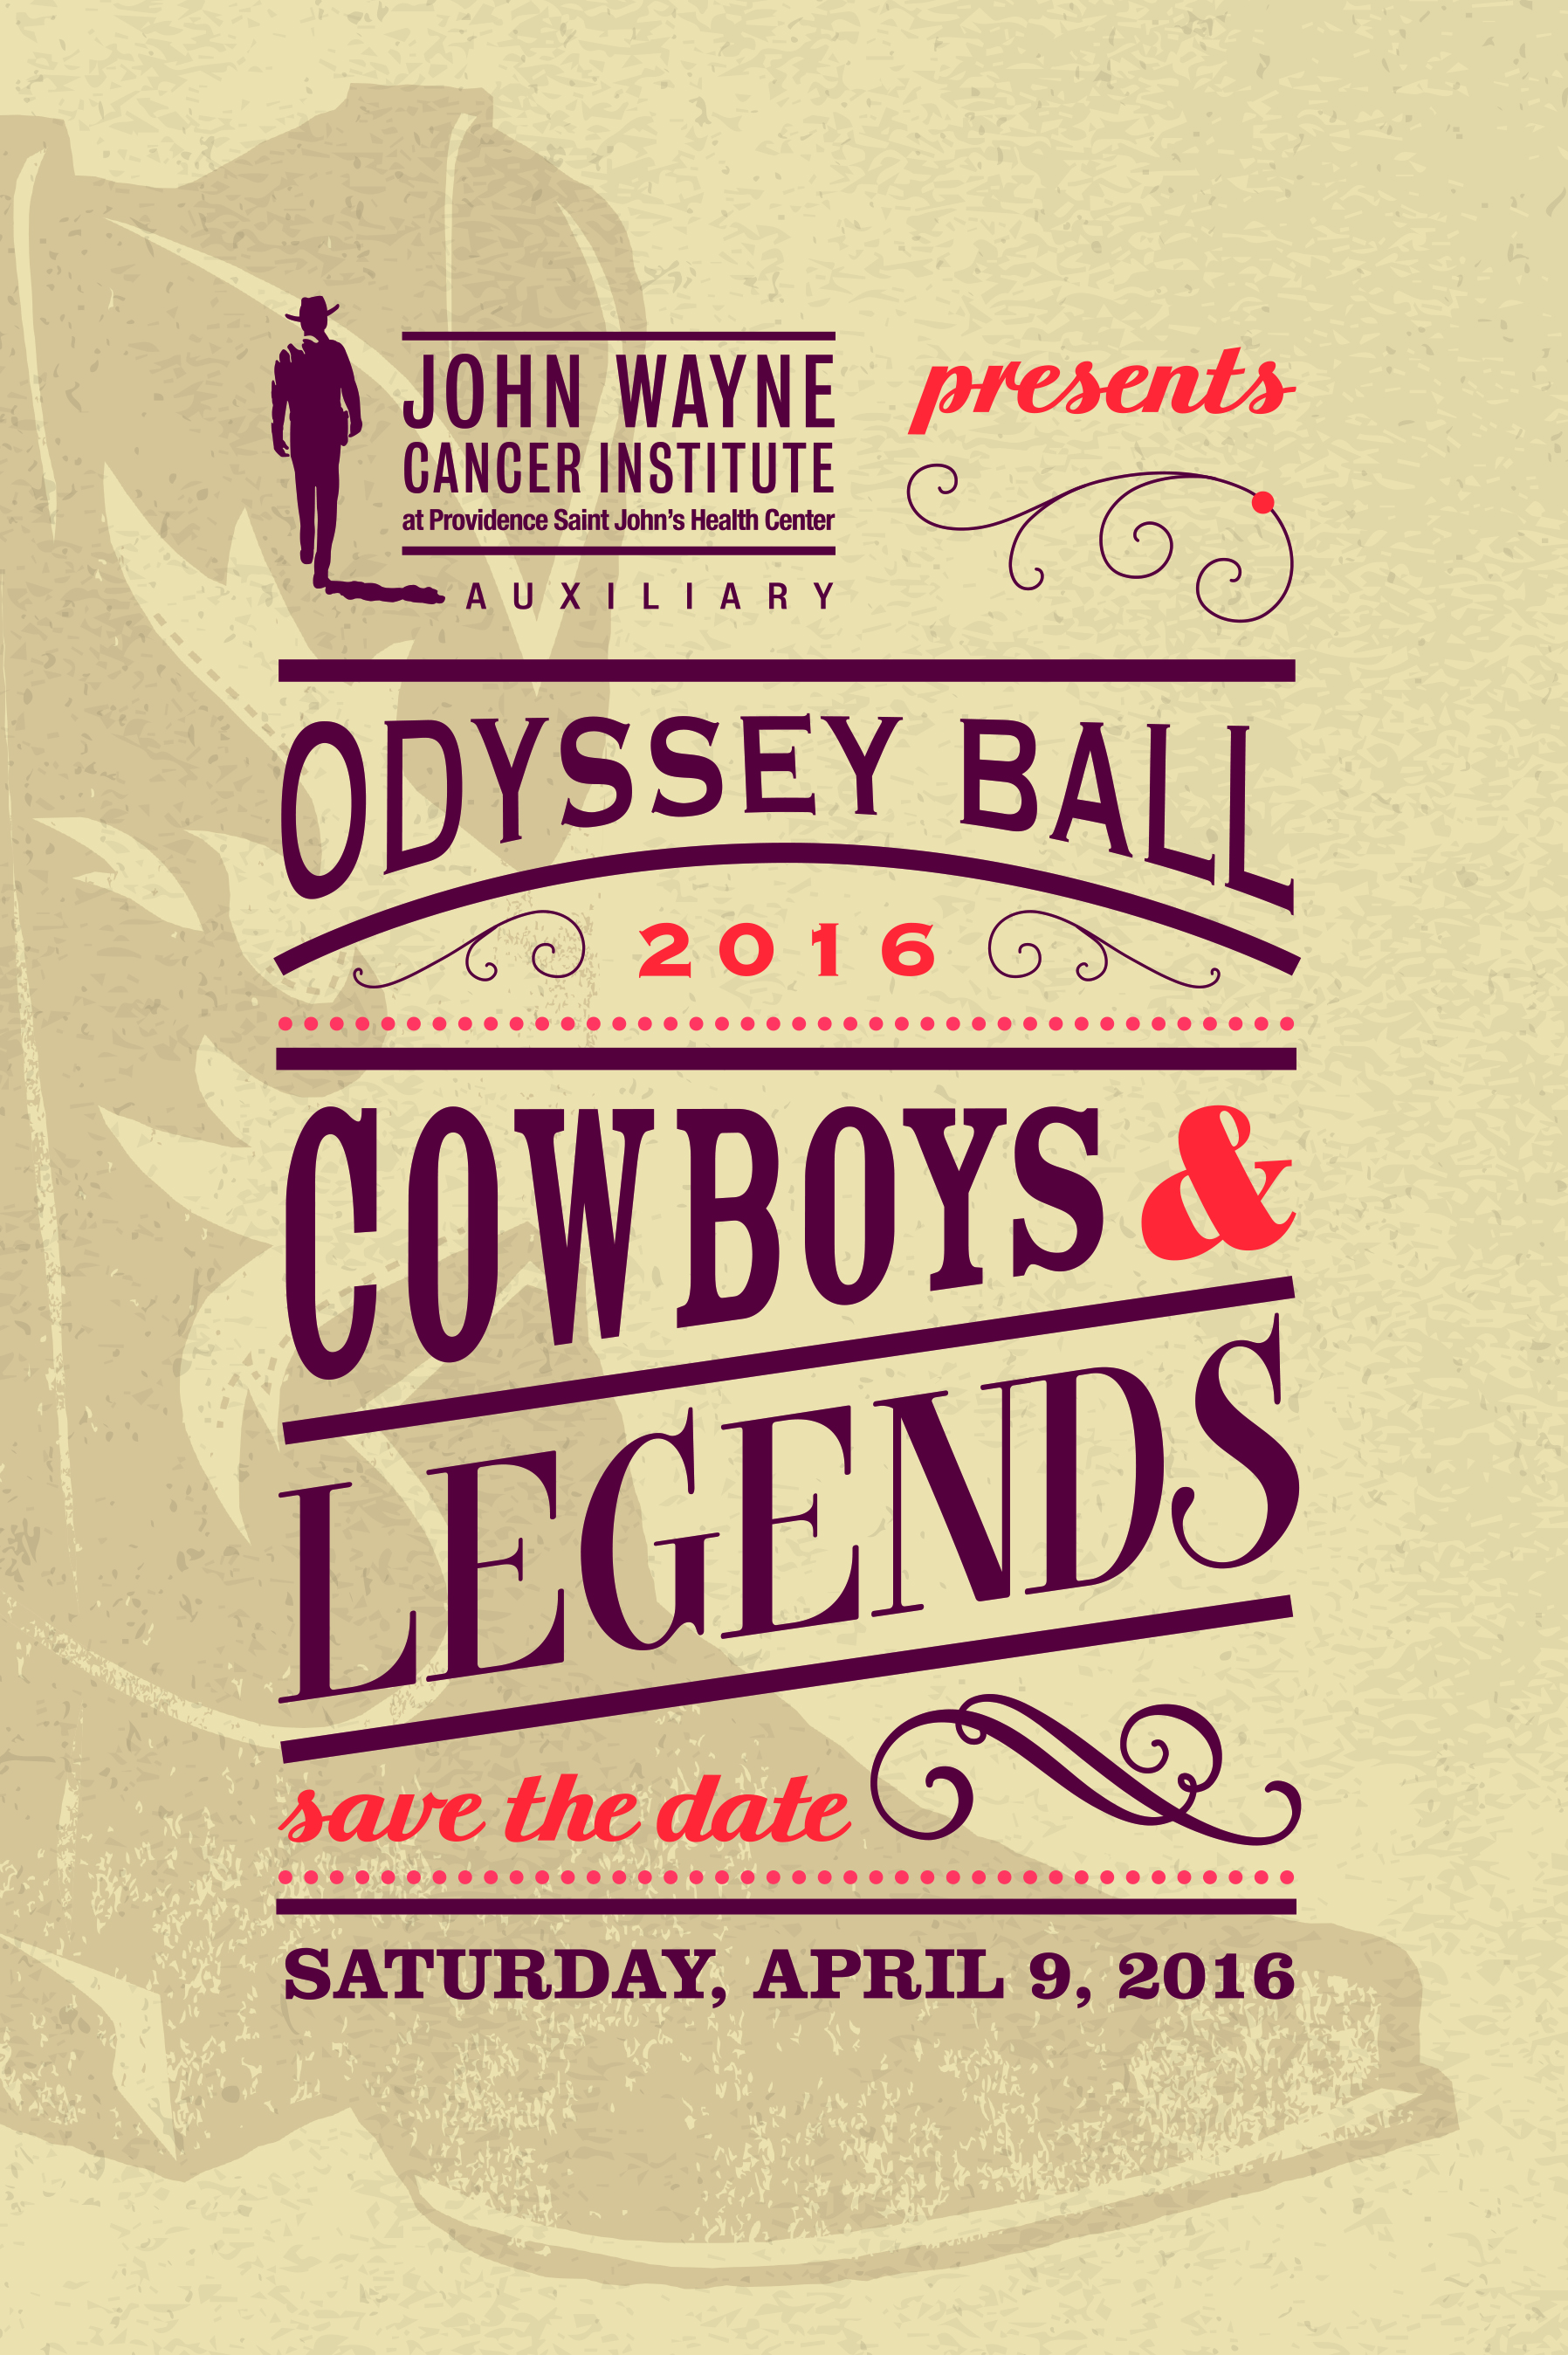 Ball Event, Save the Date